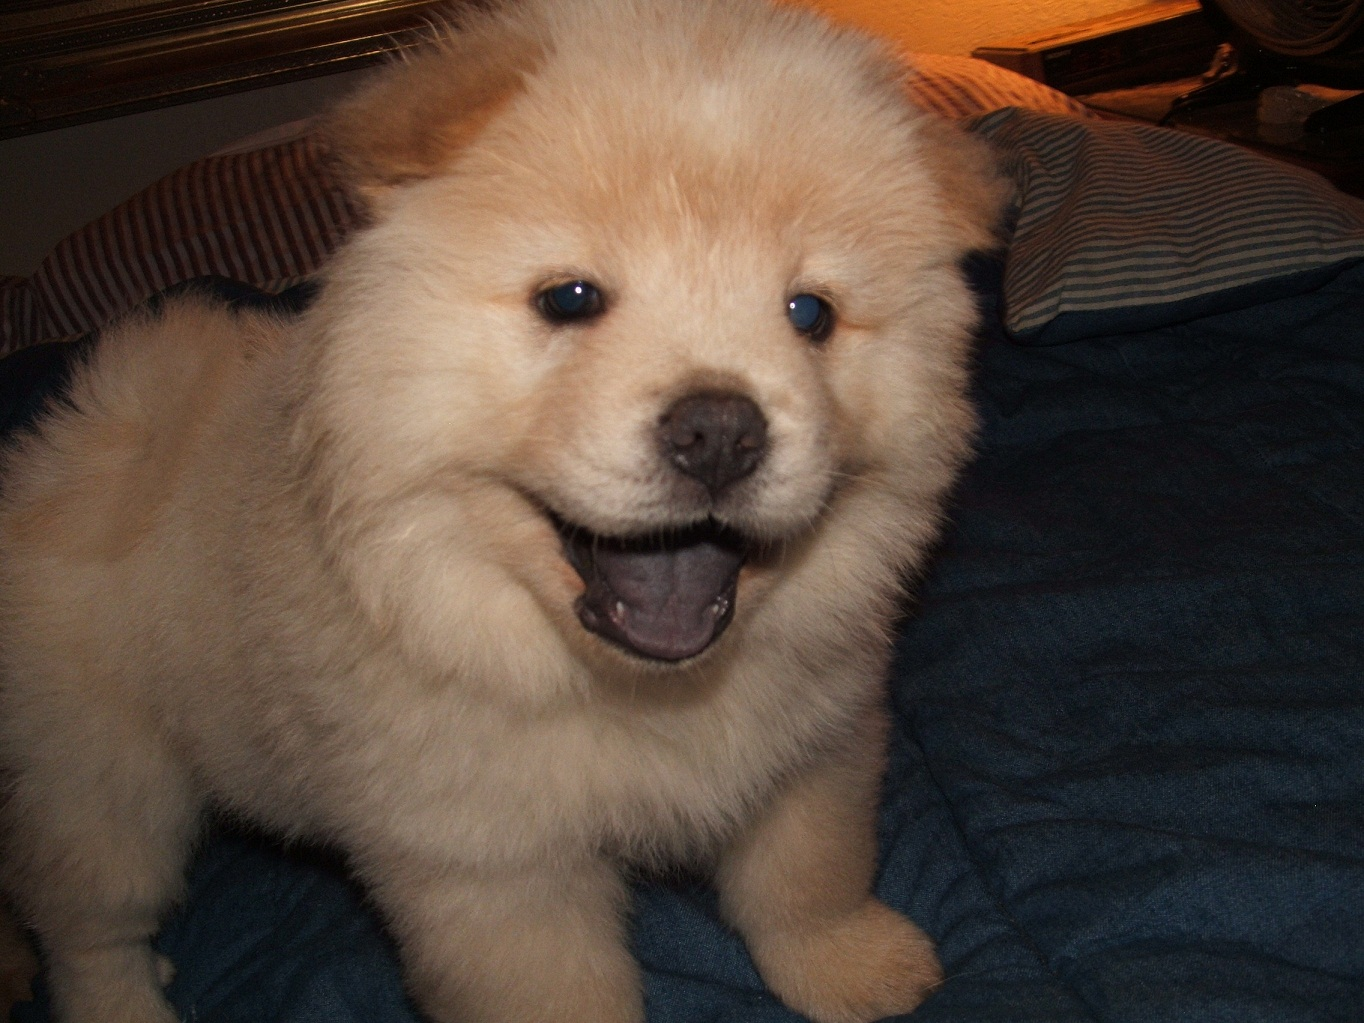 Chow Chow Puppy Pictures | Puppy Pictures and Information